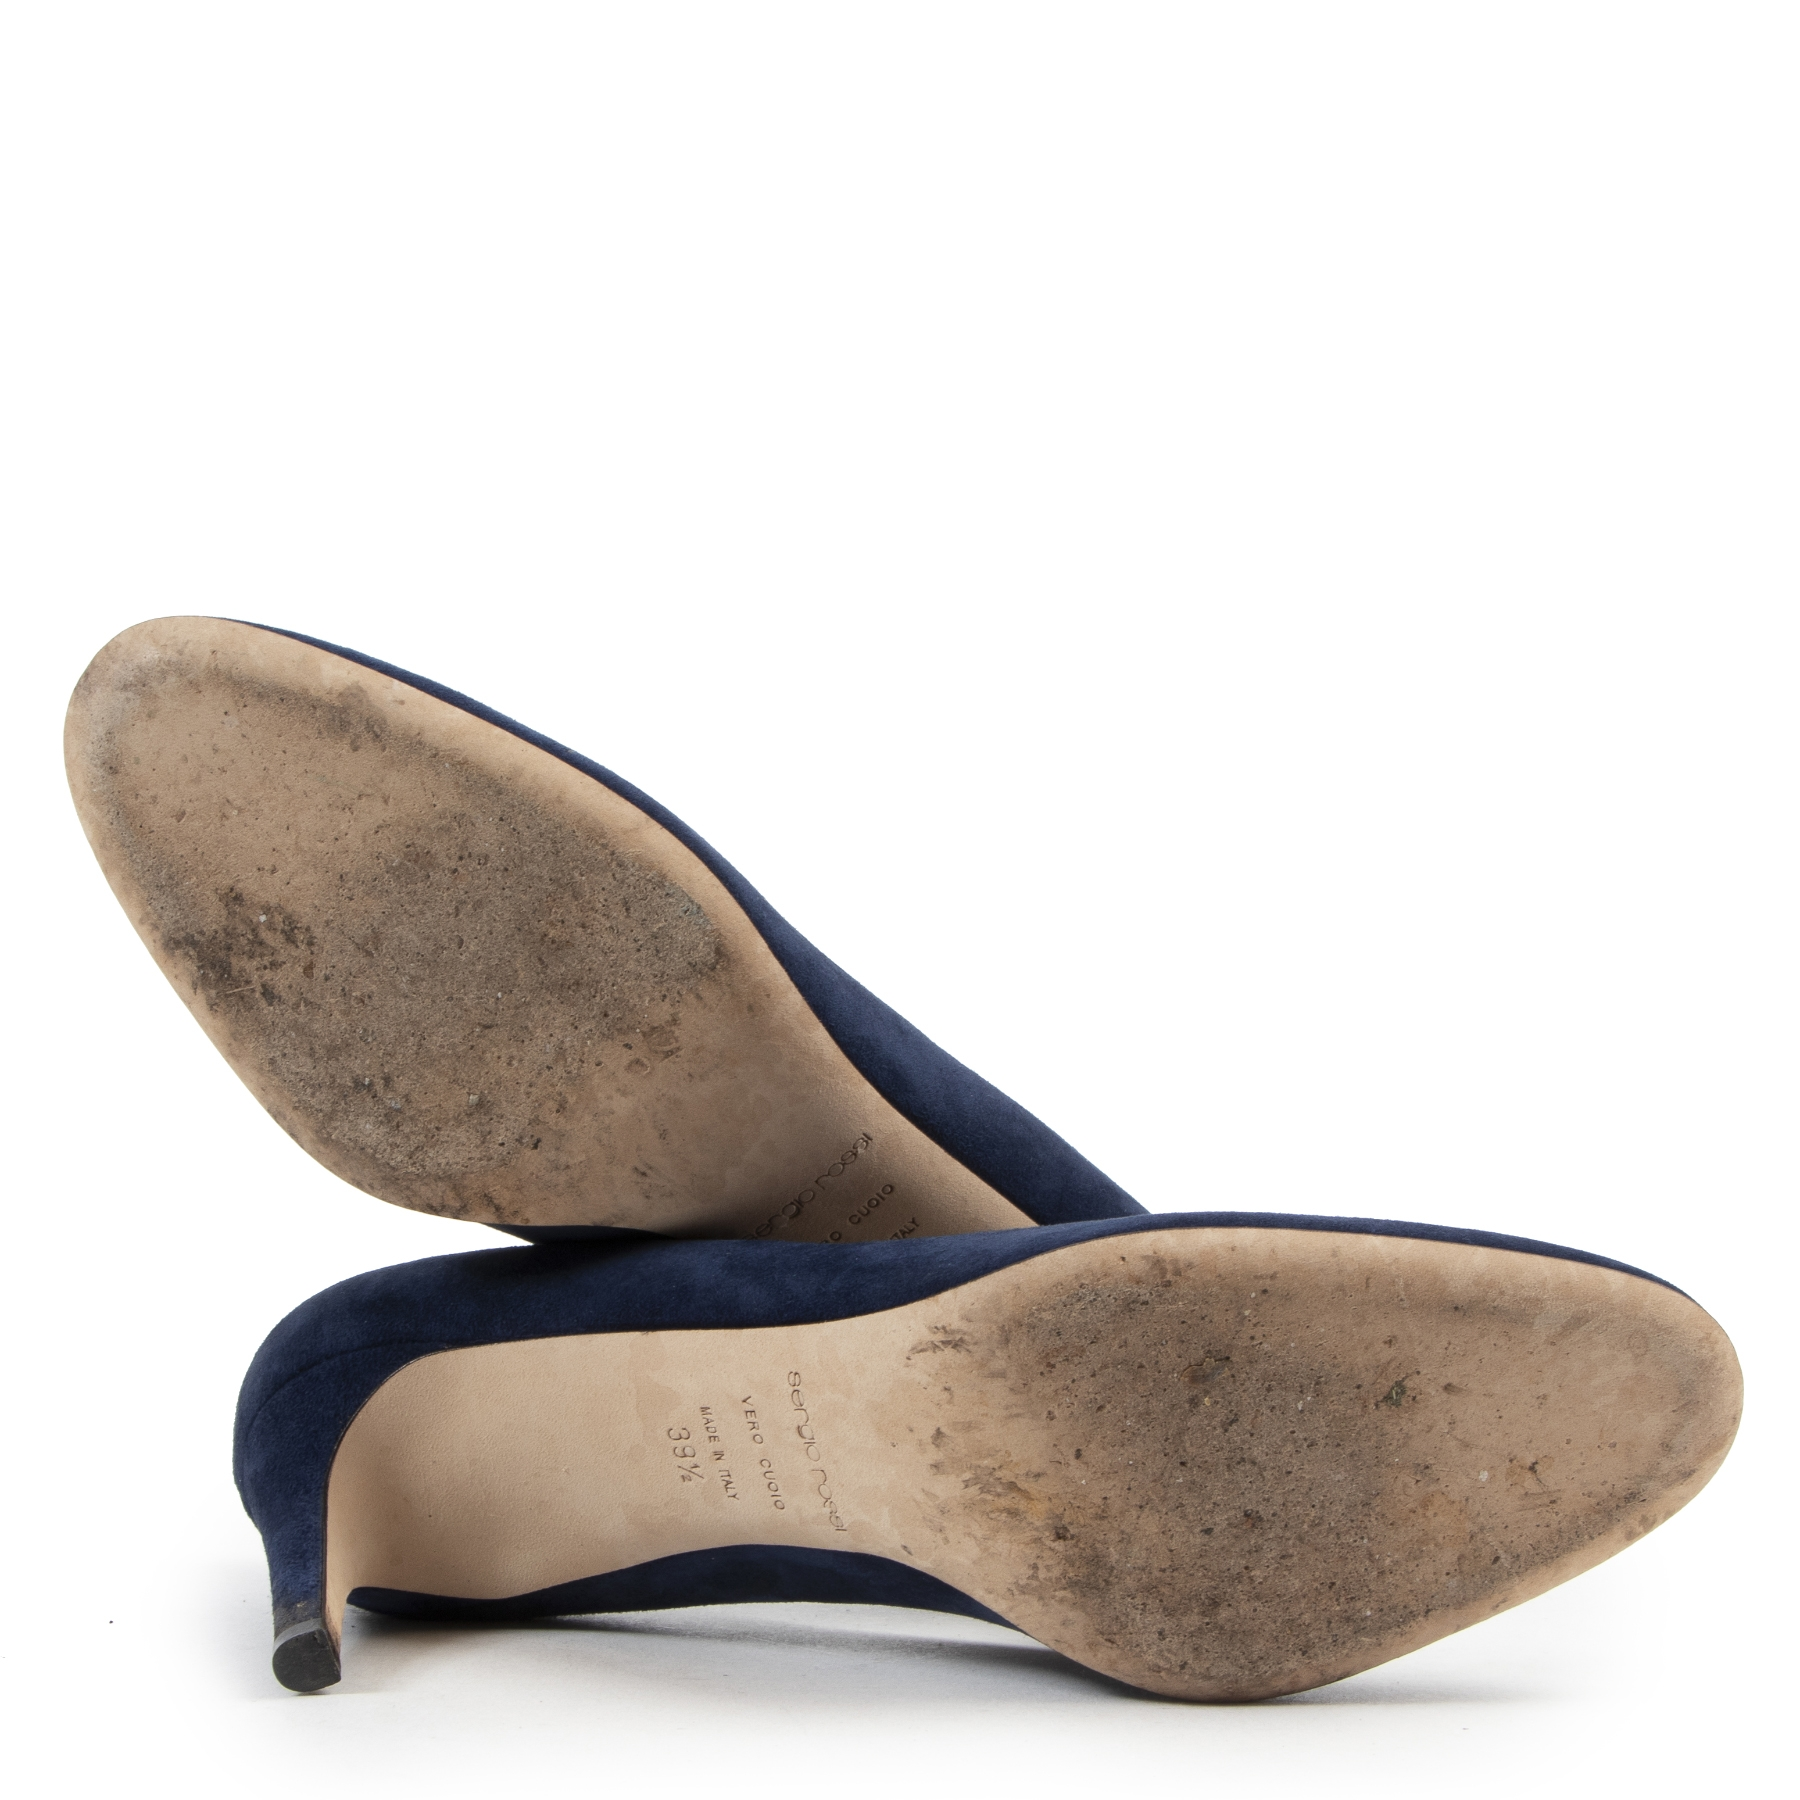 Buy online designer vintage shoes at LabelLOV Antwerp